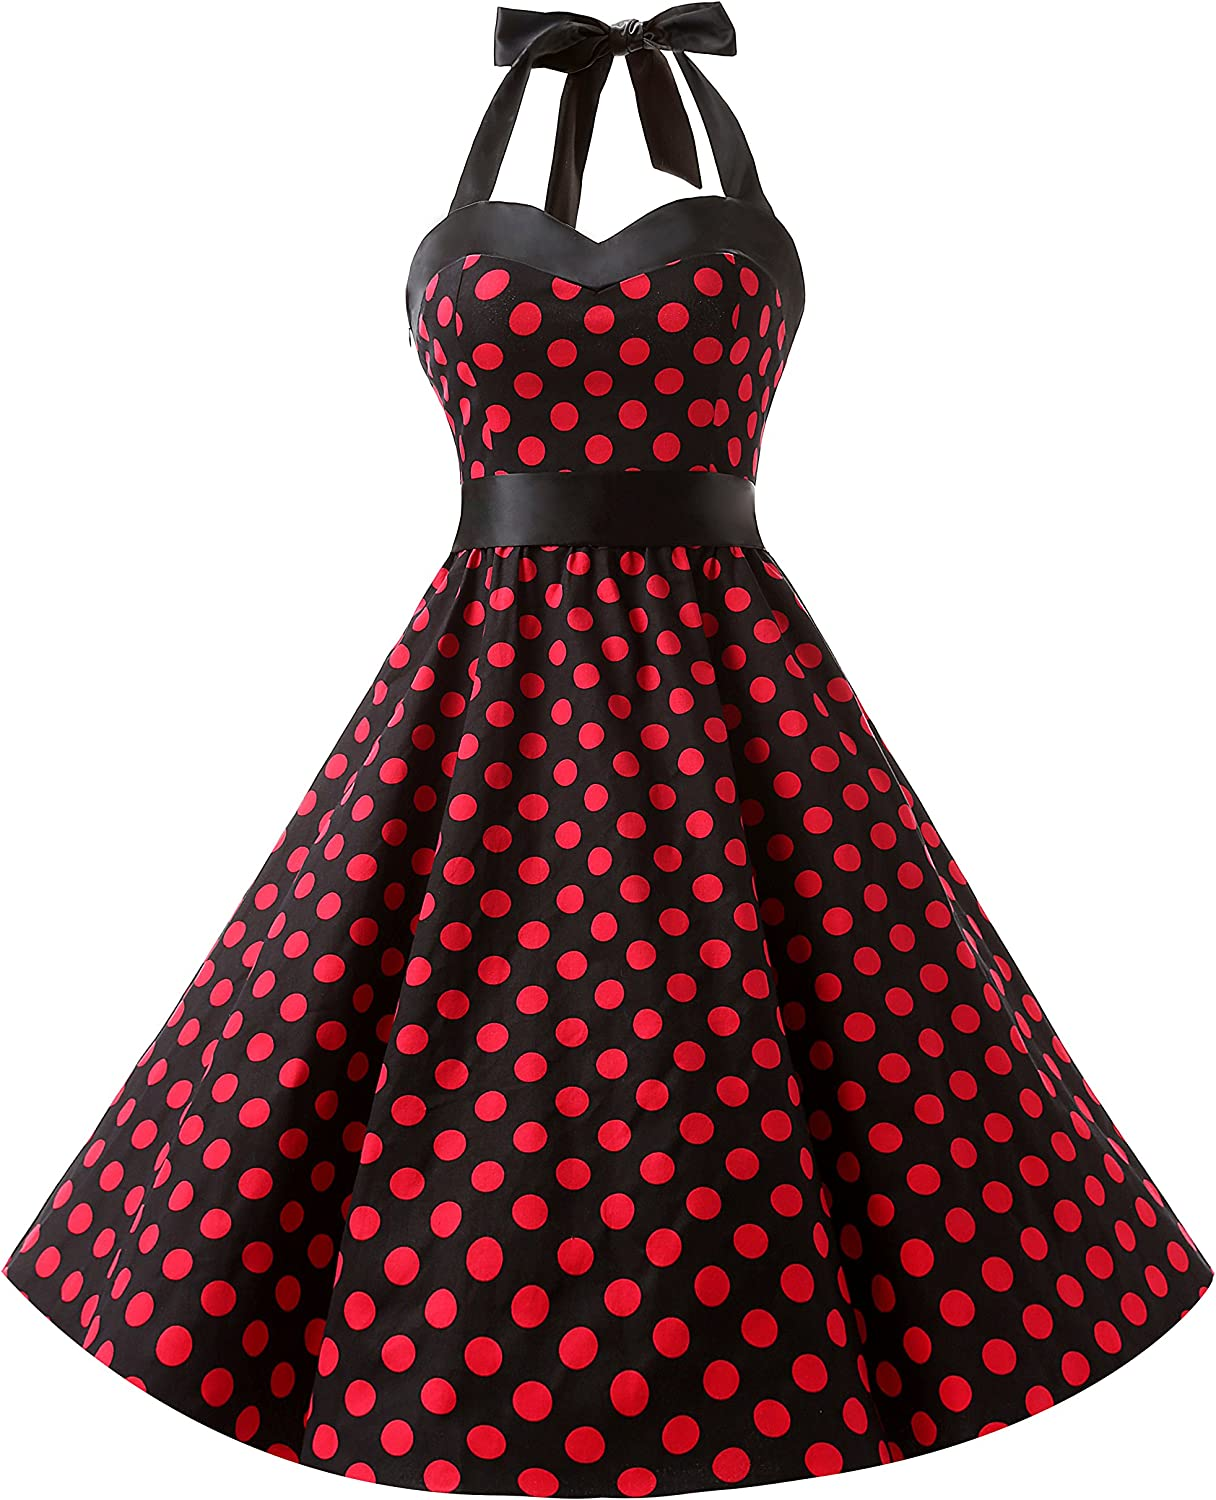 TALLA S. Dresstells® Halter 50s Rockabilly Polka Dots Audrey Dress Retro Cocktail Dress Black Red Dot S